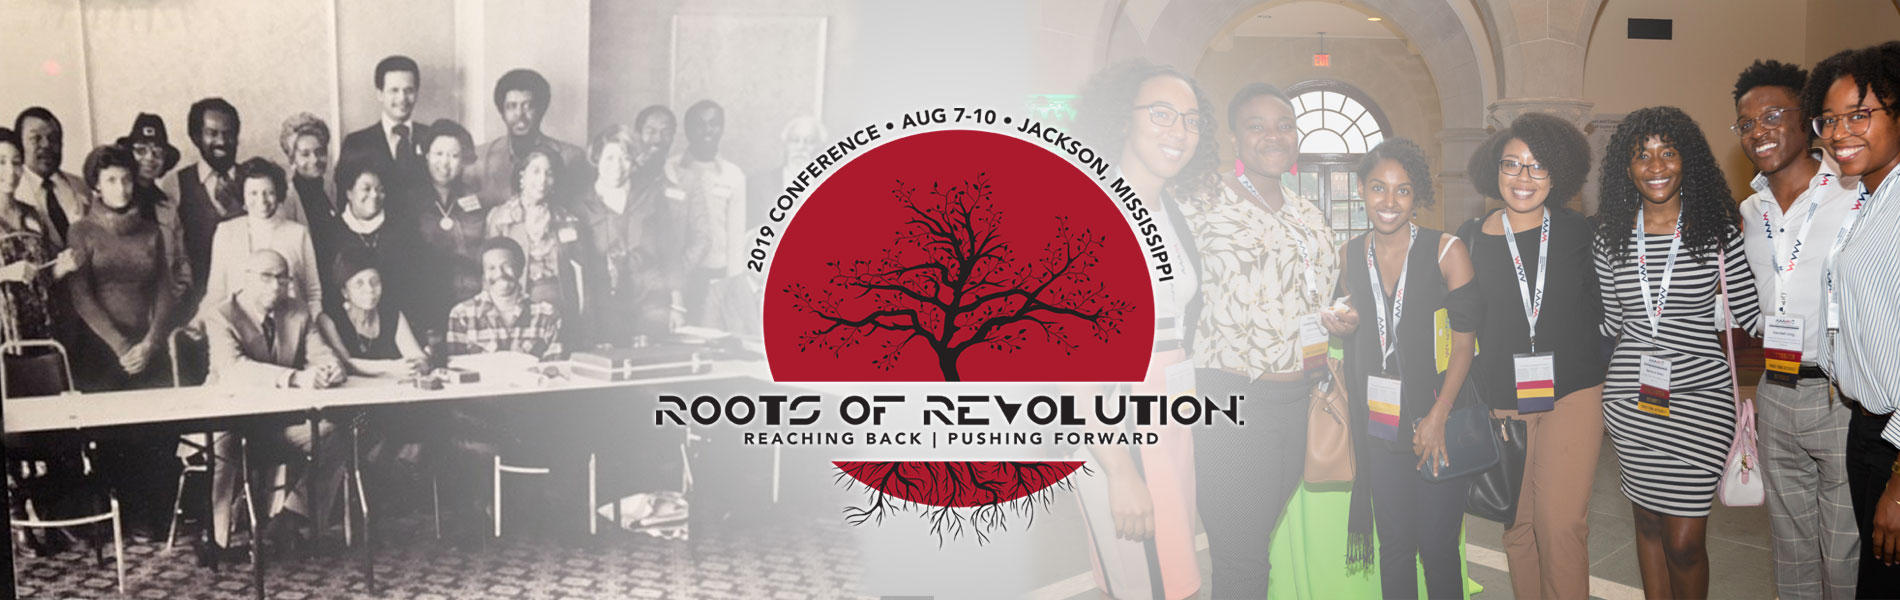 Roots of Revolution, Reach Back, Pushing Forward